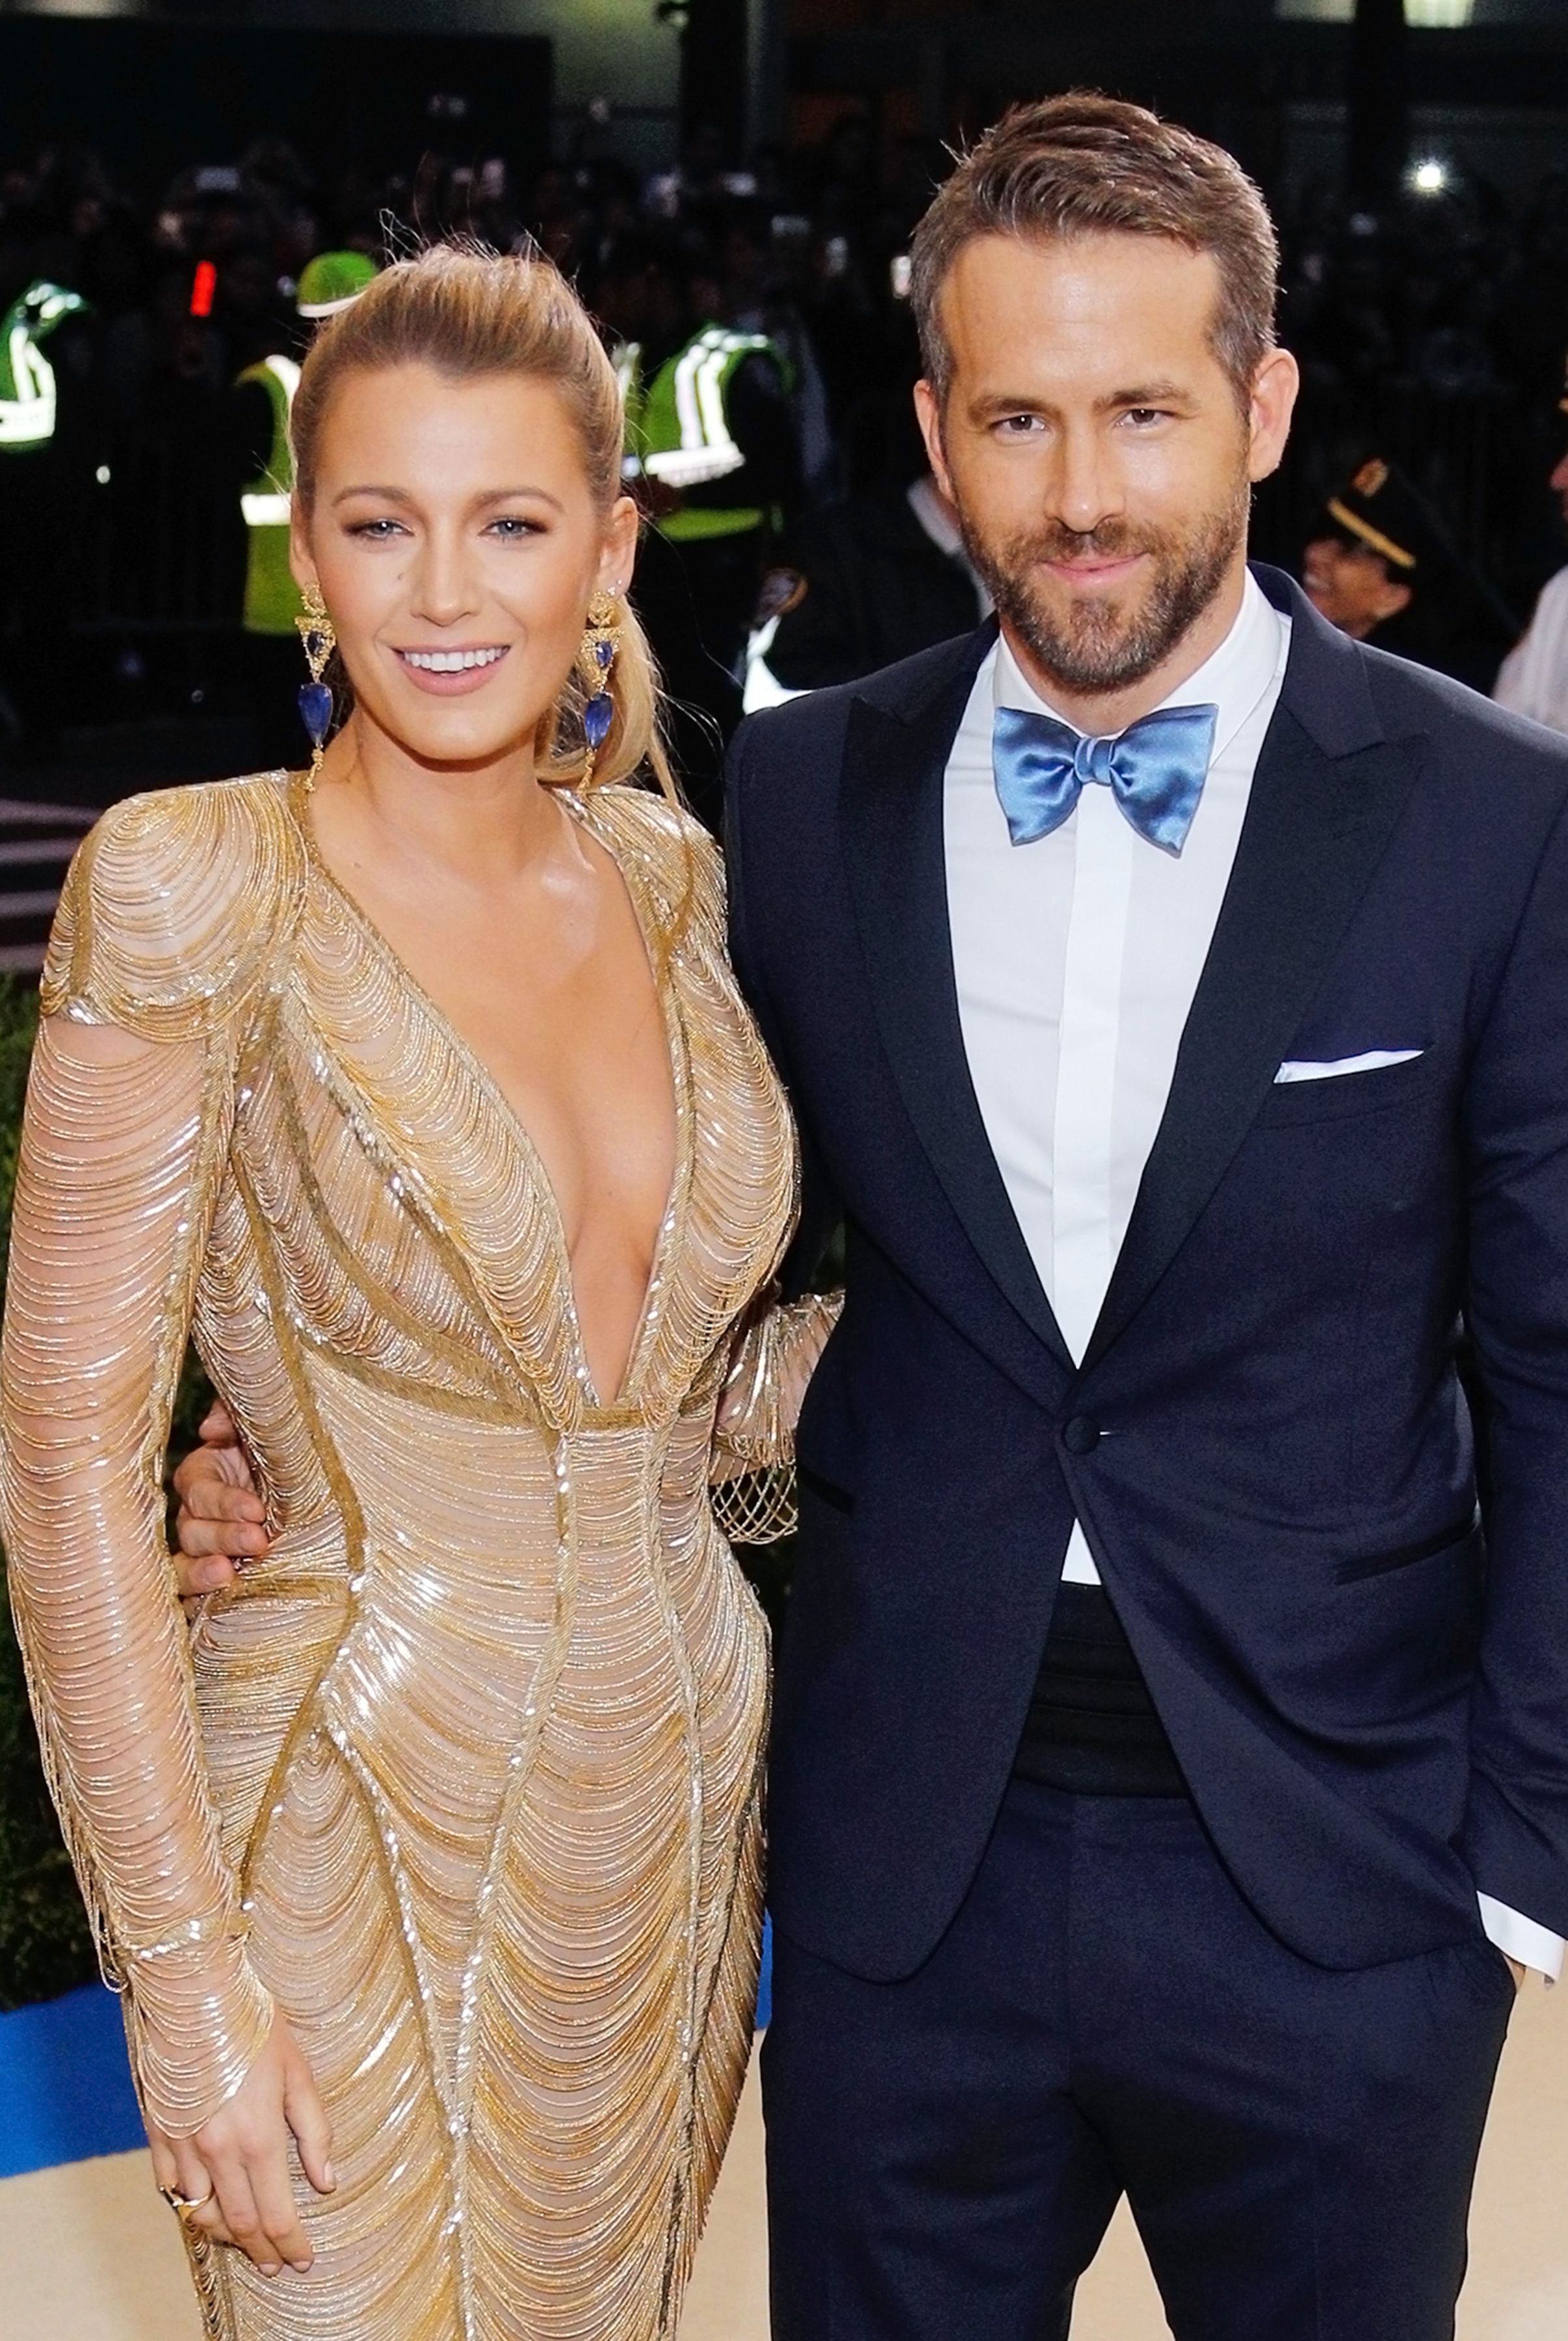 Blake Lively and Ryan Reynolds Both Blake Lively and Ryan Reynolds have that blonde, tan, California movie star vibe going for them. Plus, they have outgoing personalities to match.